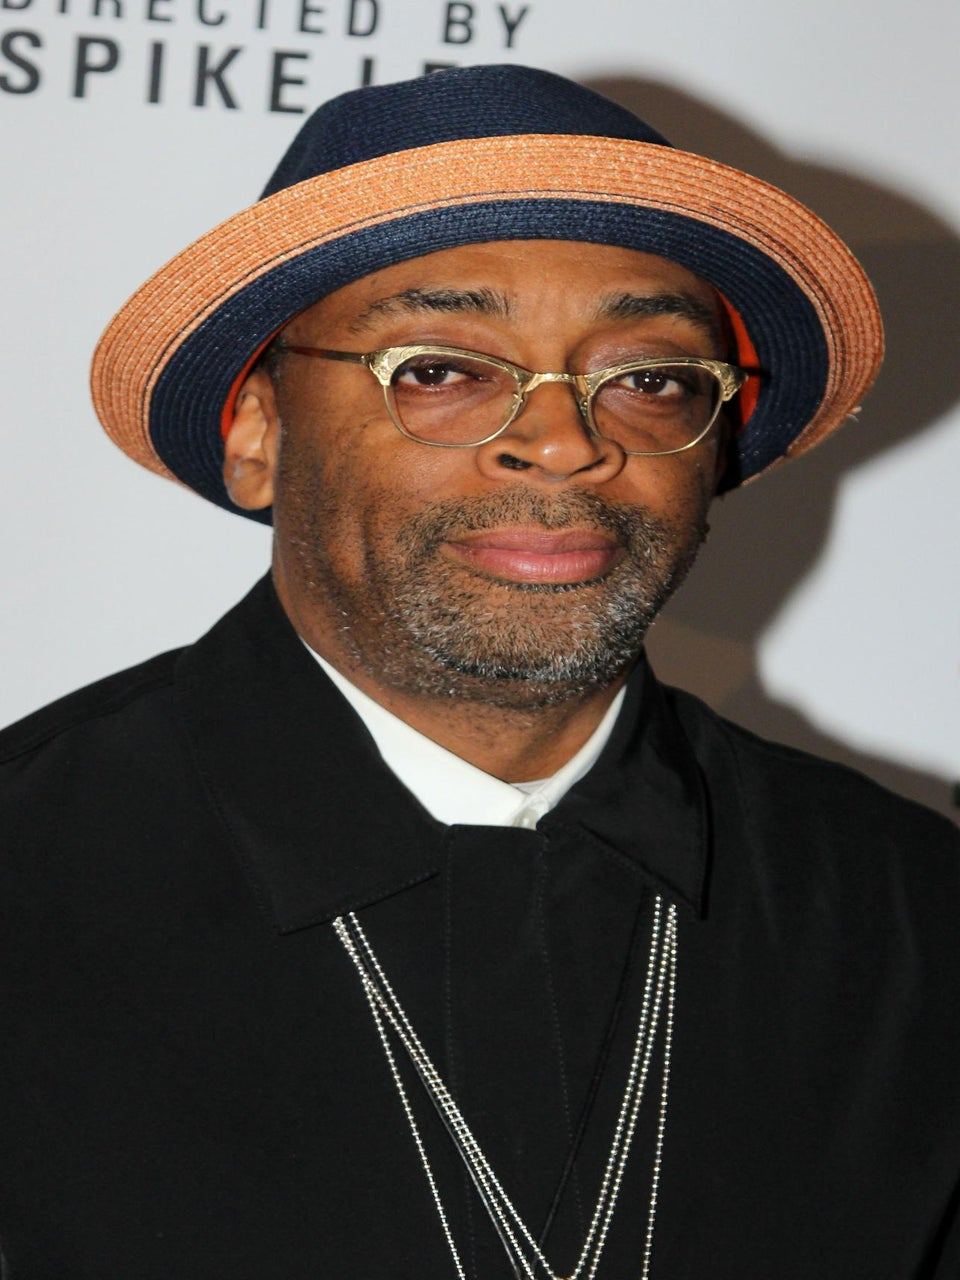 EXCLUSIVE: Spike Lee Talks 'Red Hook Summer,' Religion and Michael Jackson Documentary